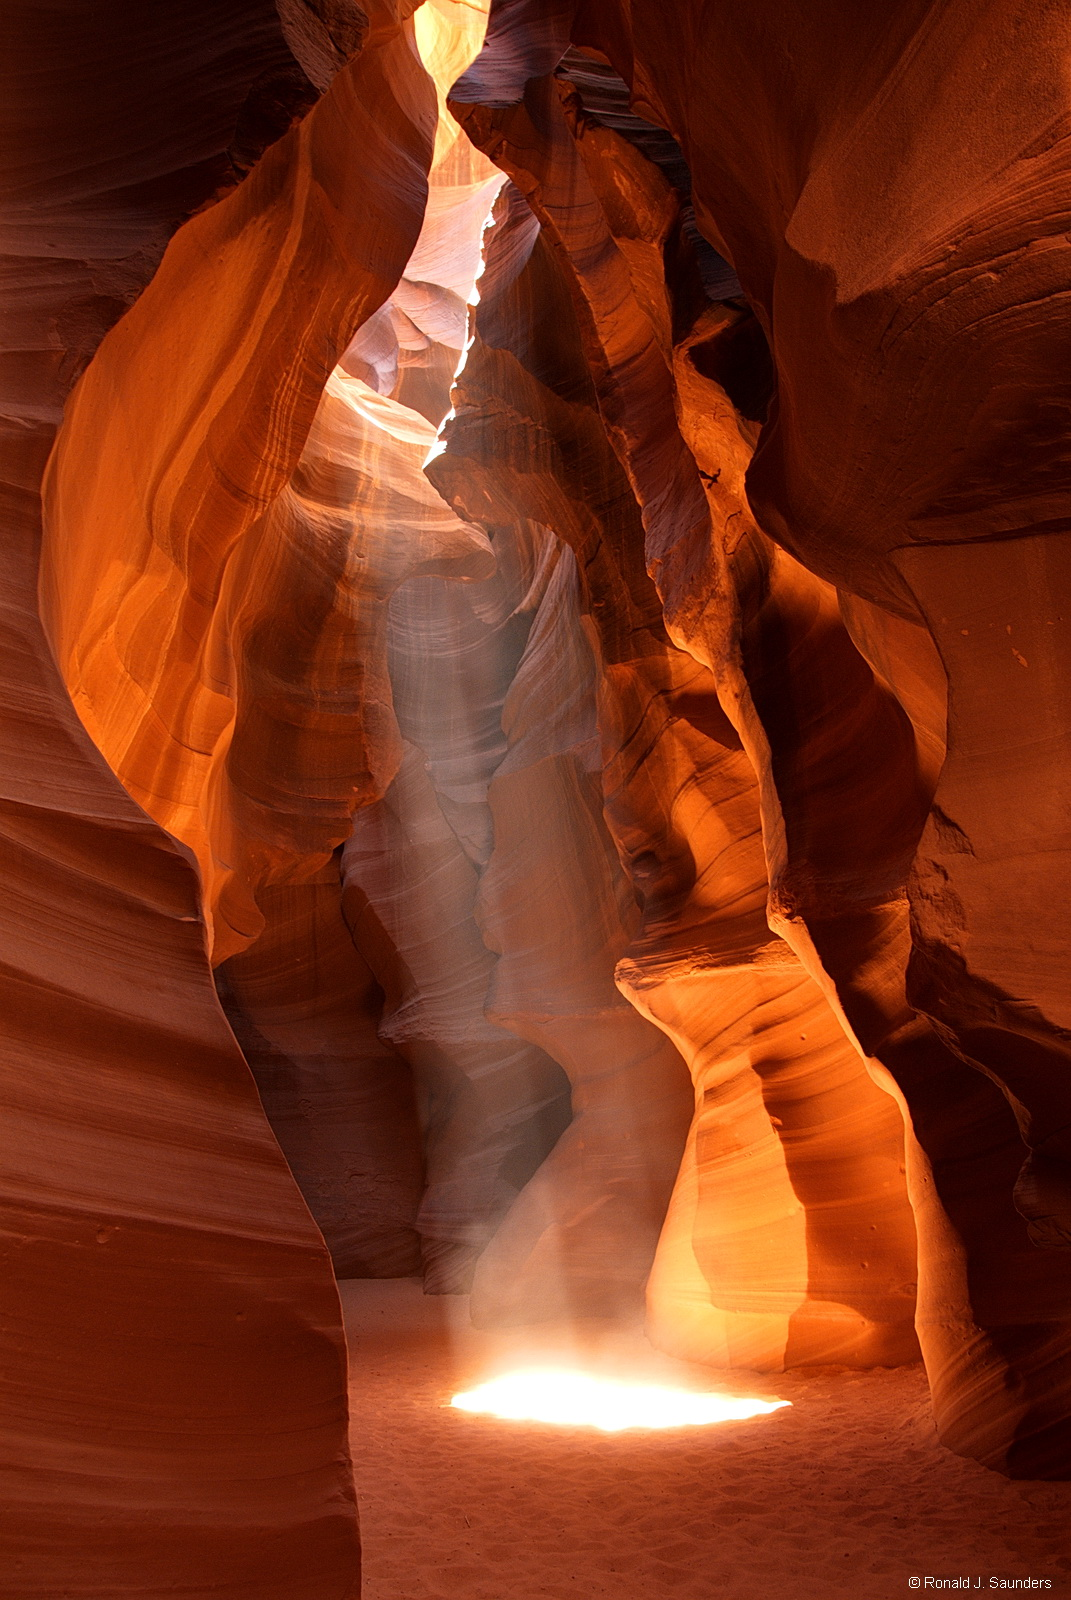 antelope canyon, page, arizona, light, beam, slot canyon, photo